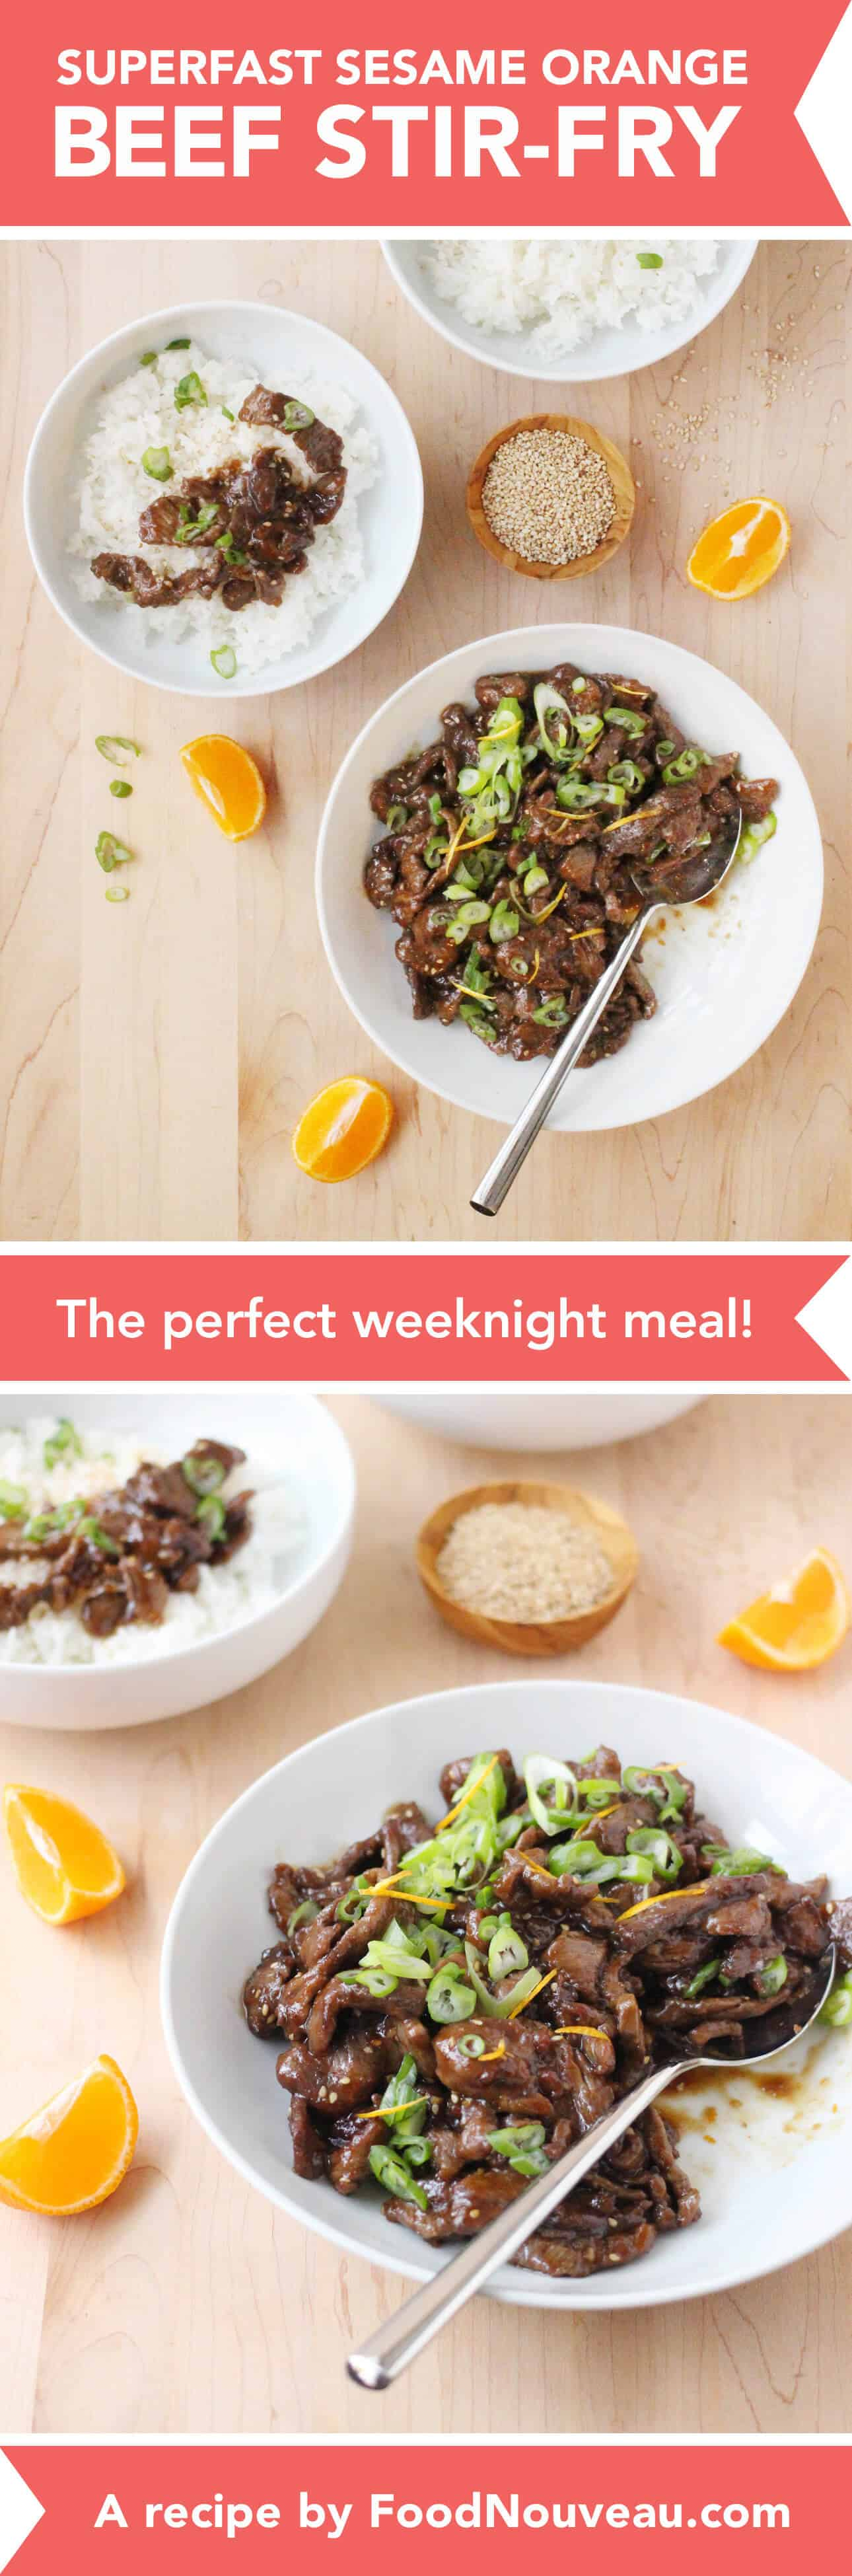 Superfast Sesame Orange Beef Stir-Fry: The perfect weeknight, family-friendly meal! // FoodNouveau.com